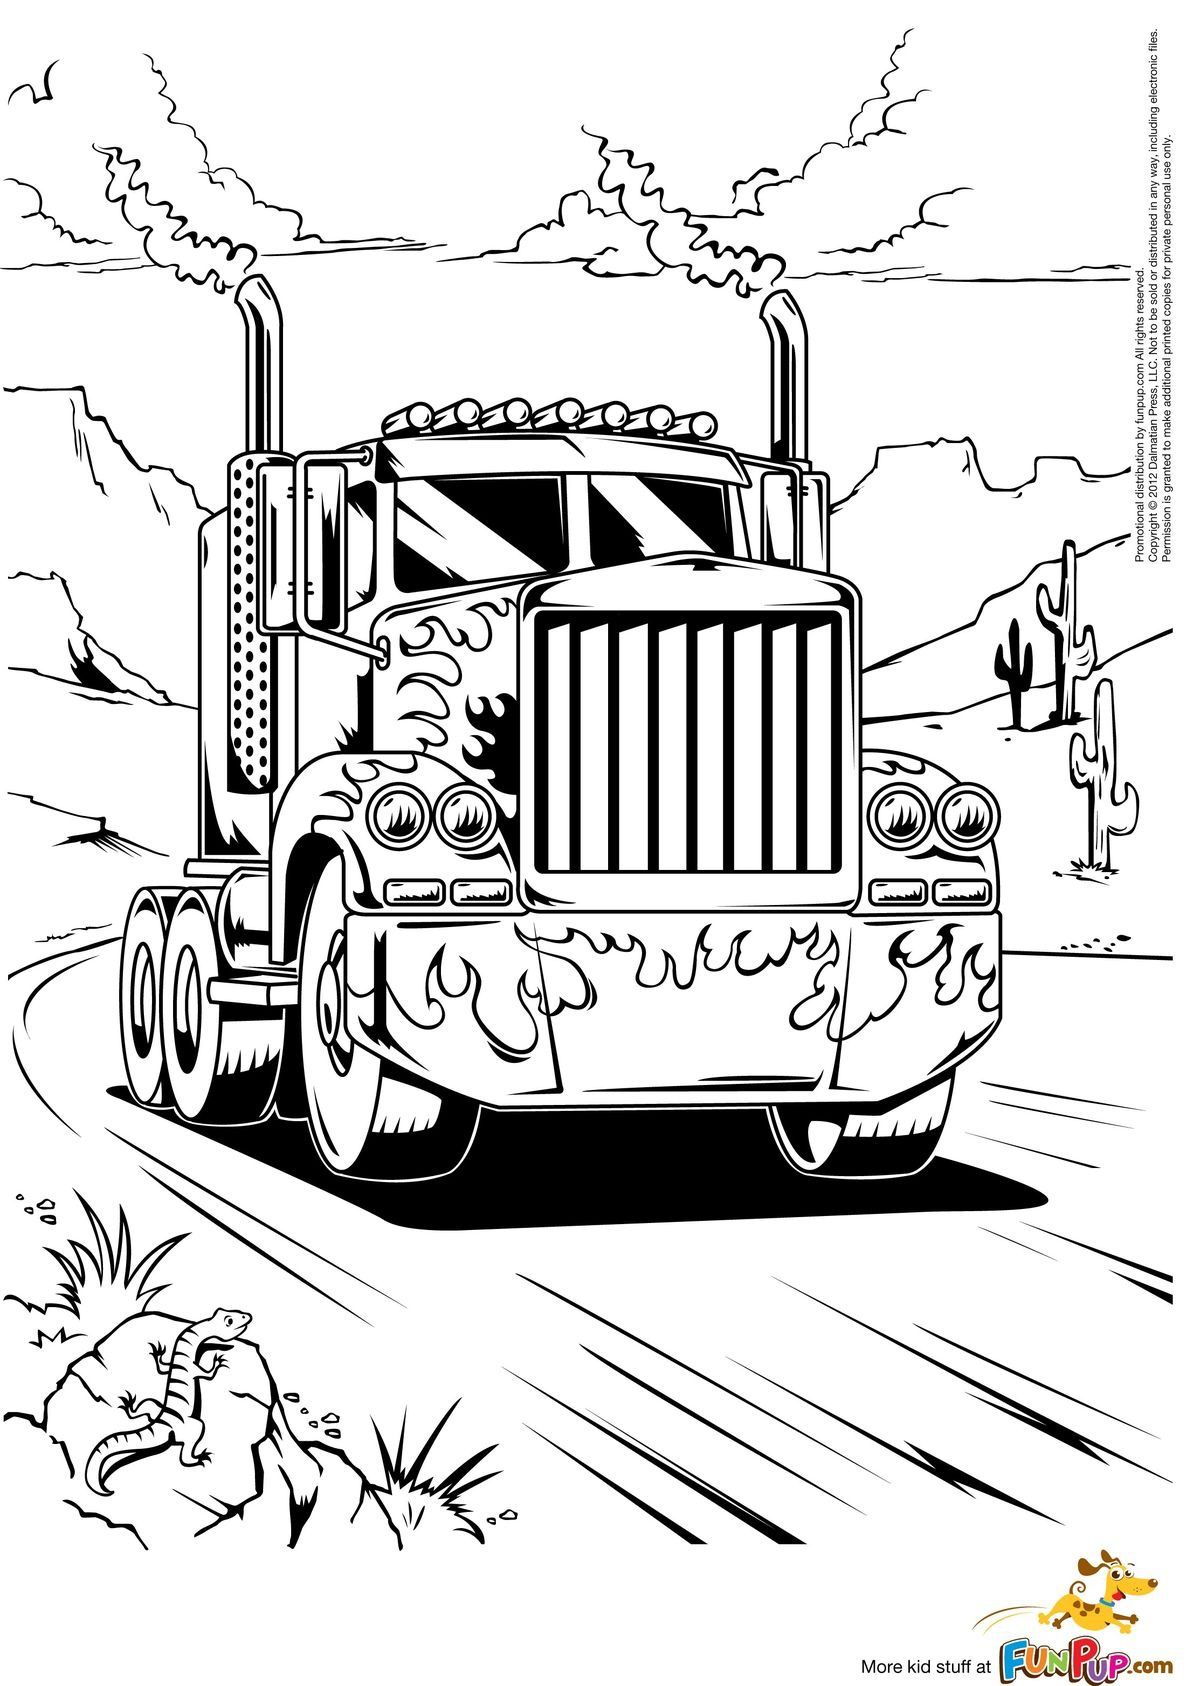 Drawing Pages Image By Pam Williams Transformers Coloring Pages